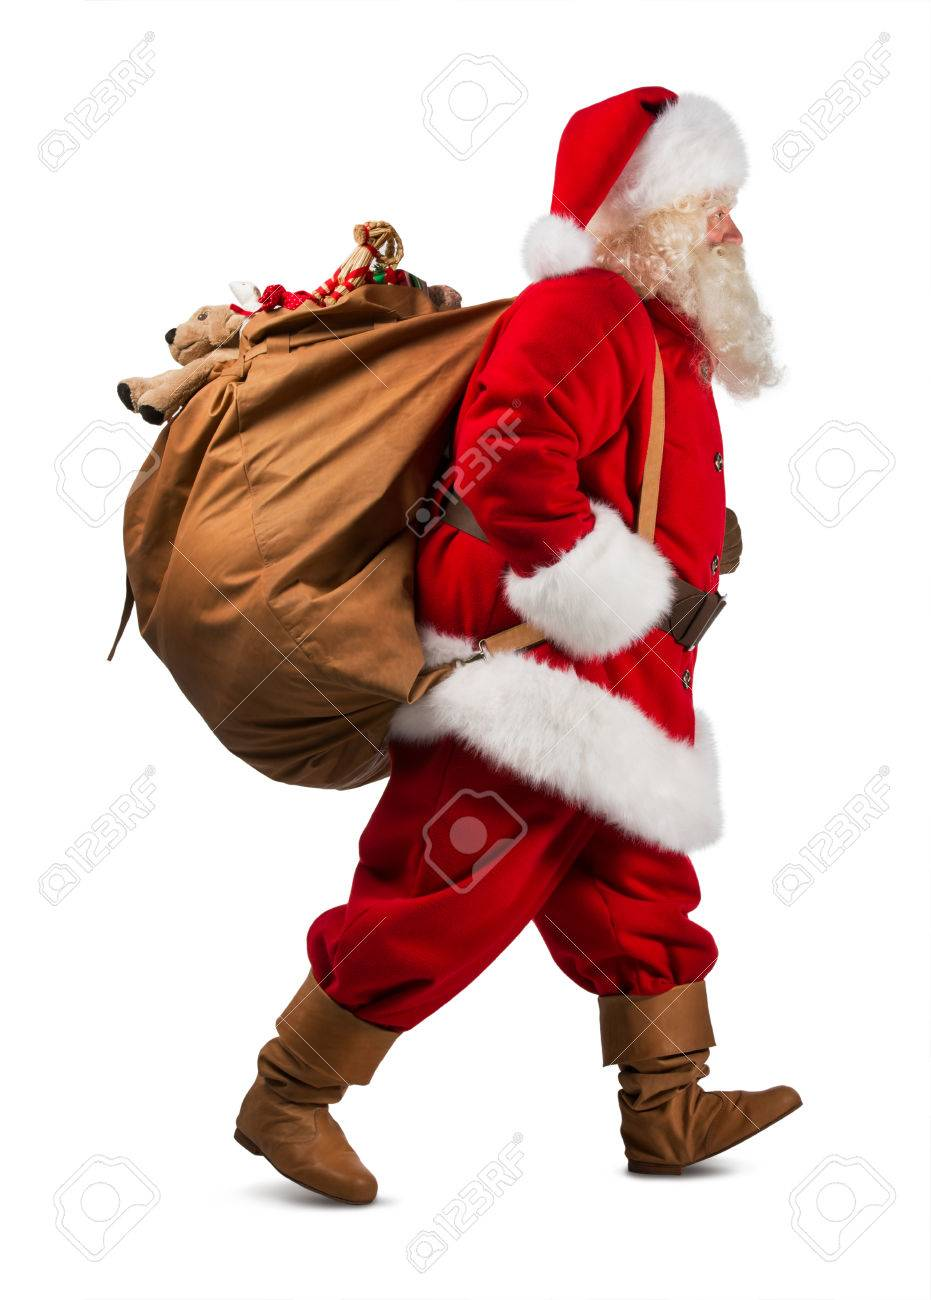 Santa Claus On The Run To Delivery Christmas Gifts Isolated On ...